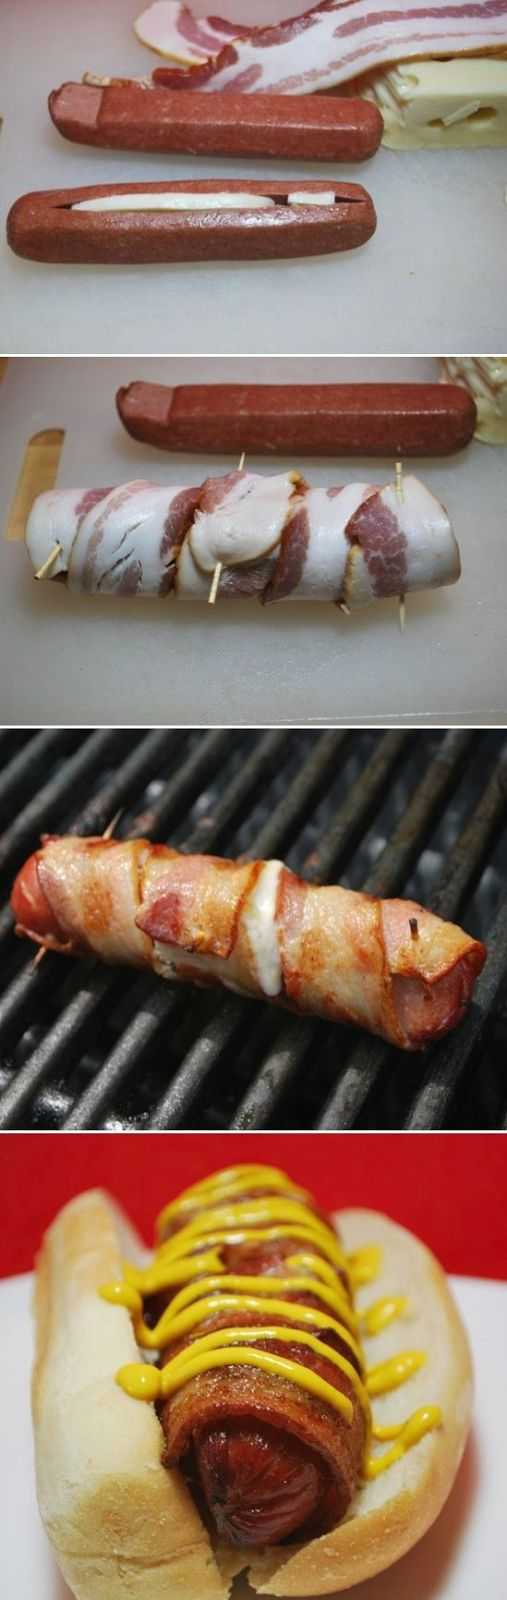 Cheesy Bacon Wrapped Hot Dog - it's definitely not healthy, but I am DEFINITELY trying this at the next BBQ this summer!!!